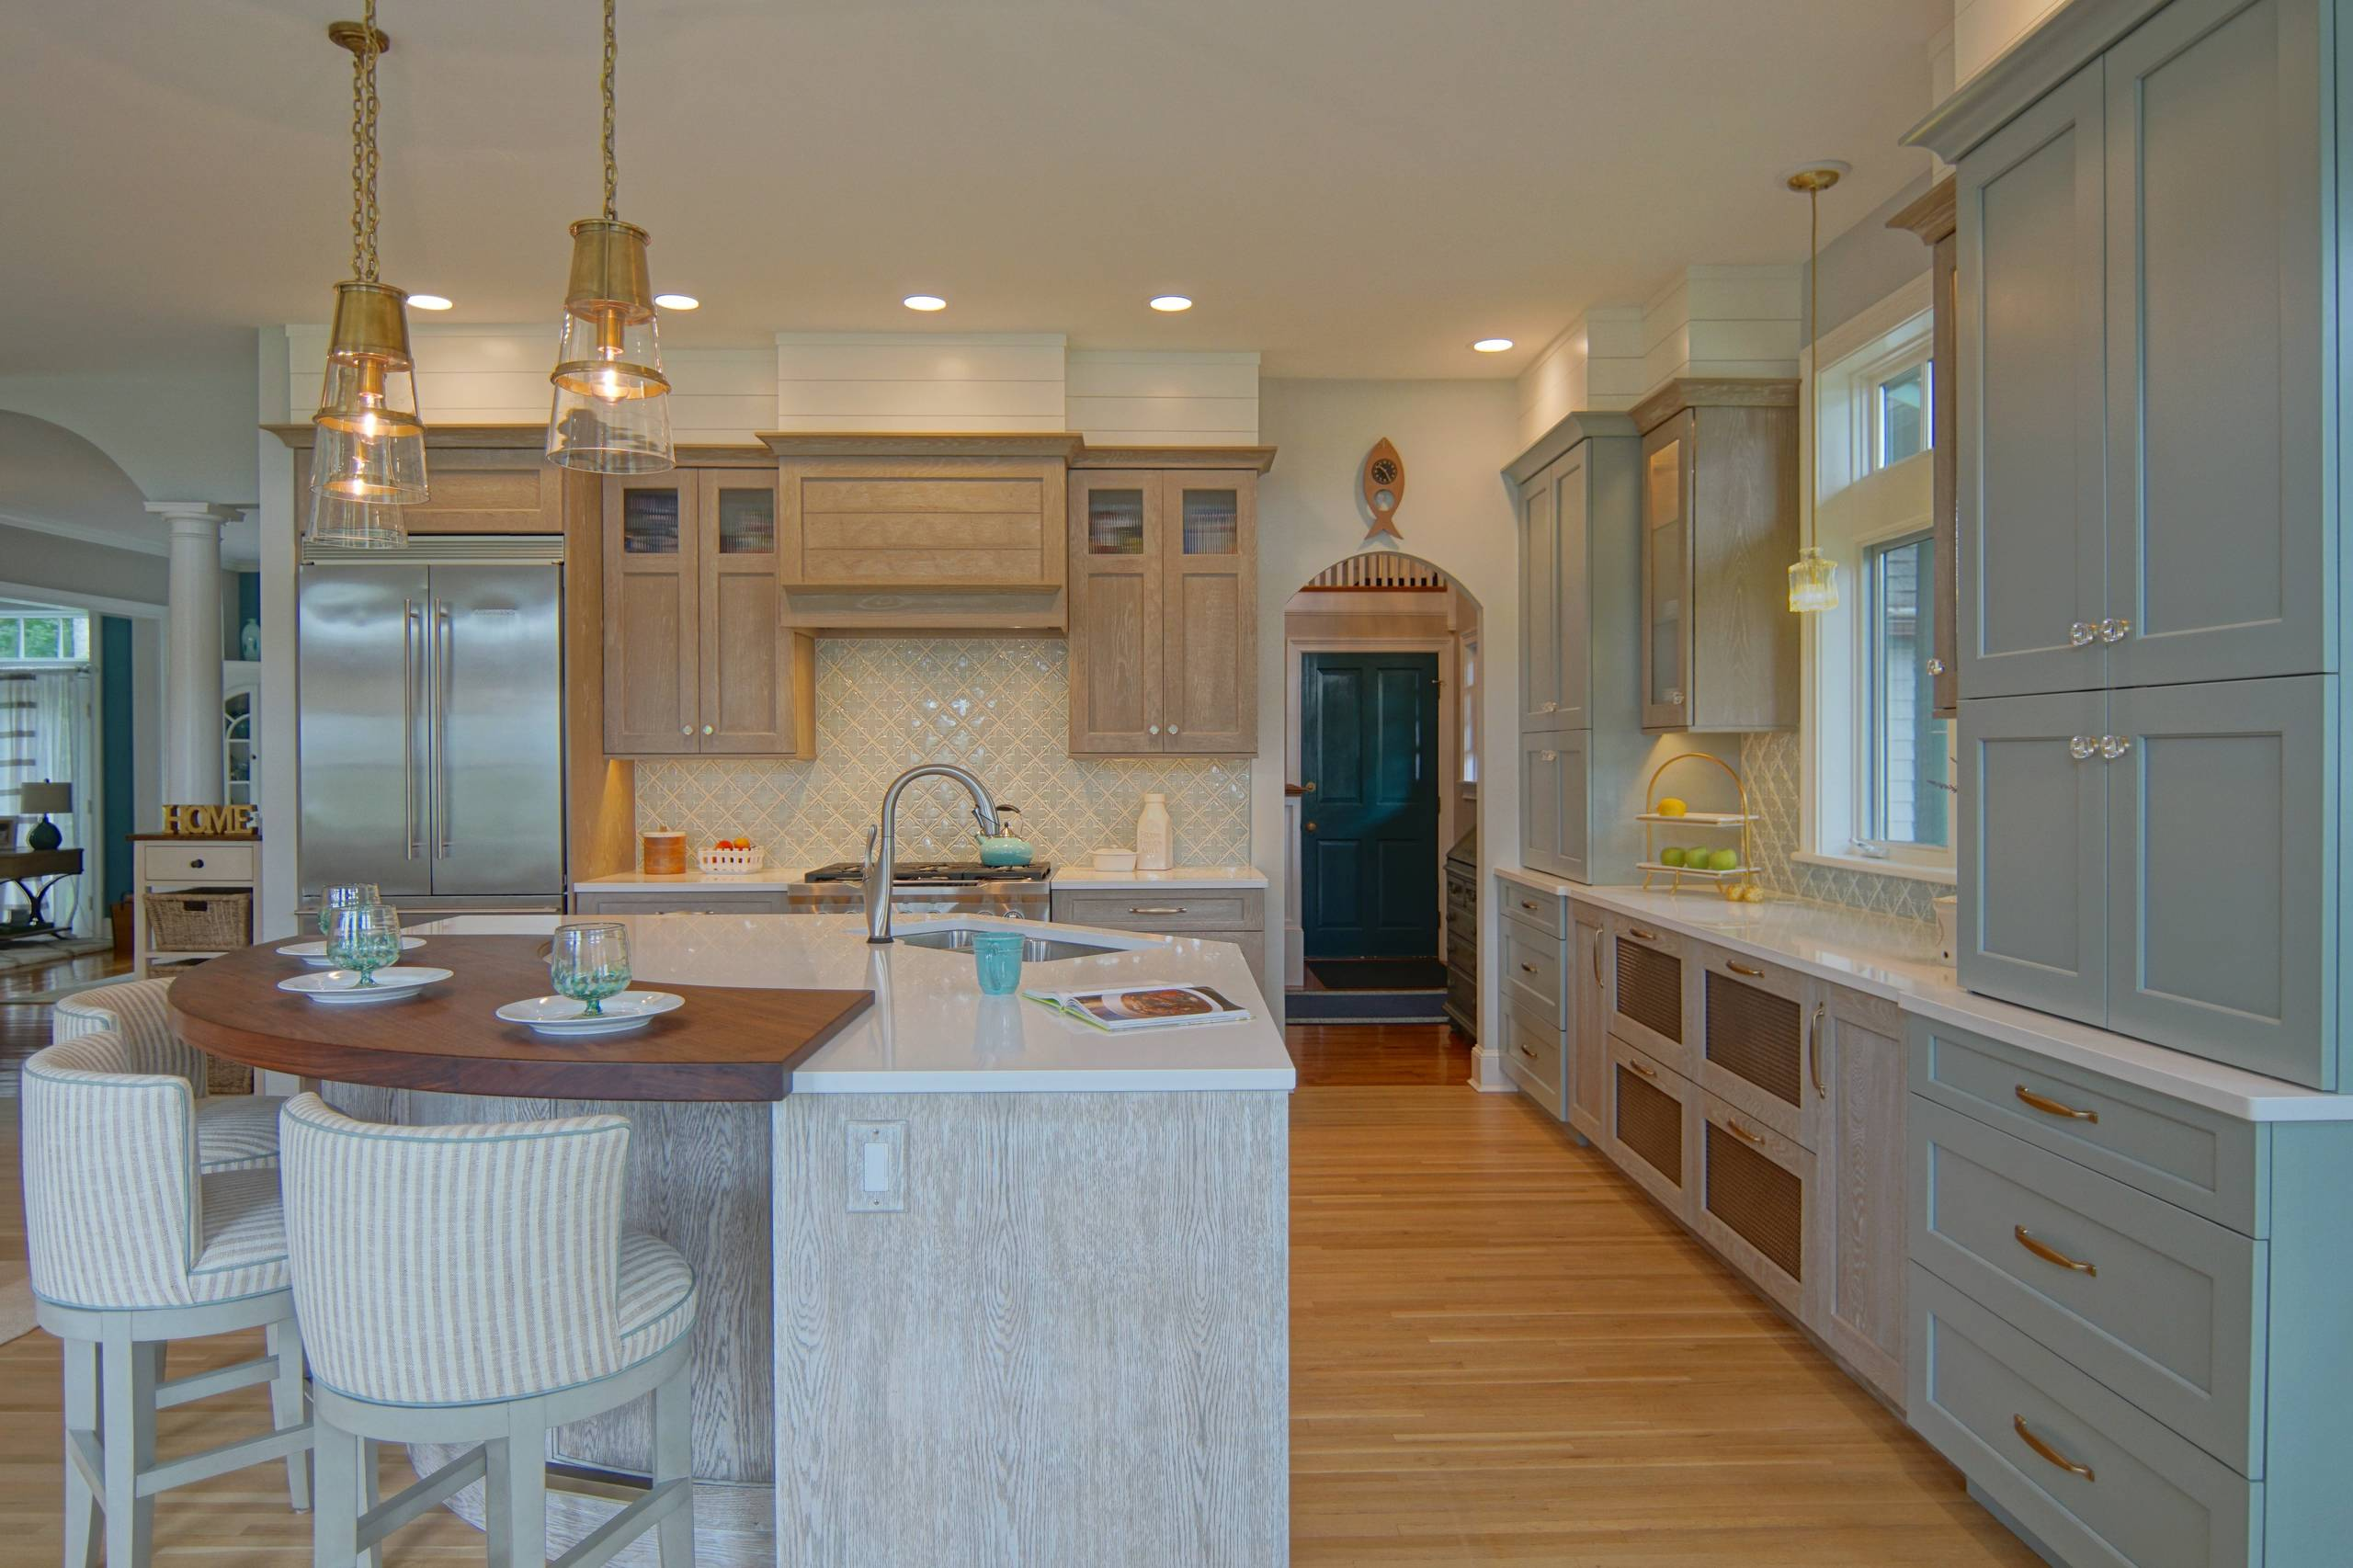 75 Beautiful Brown Kitchen With Turquoise Cabinets Pictures Ideas April 2021 Houzz